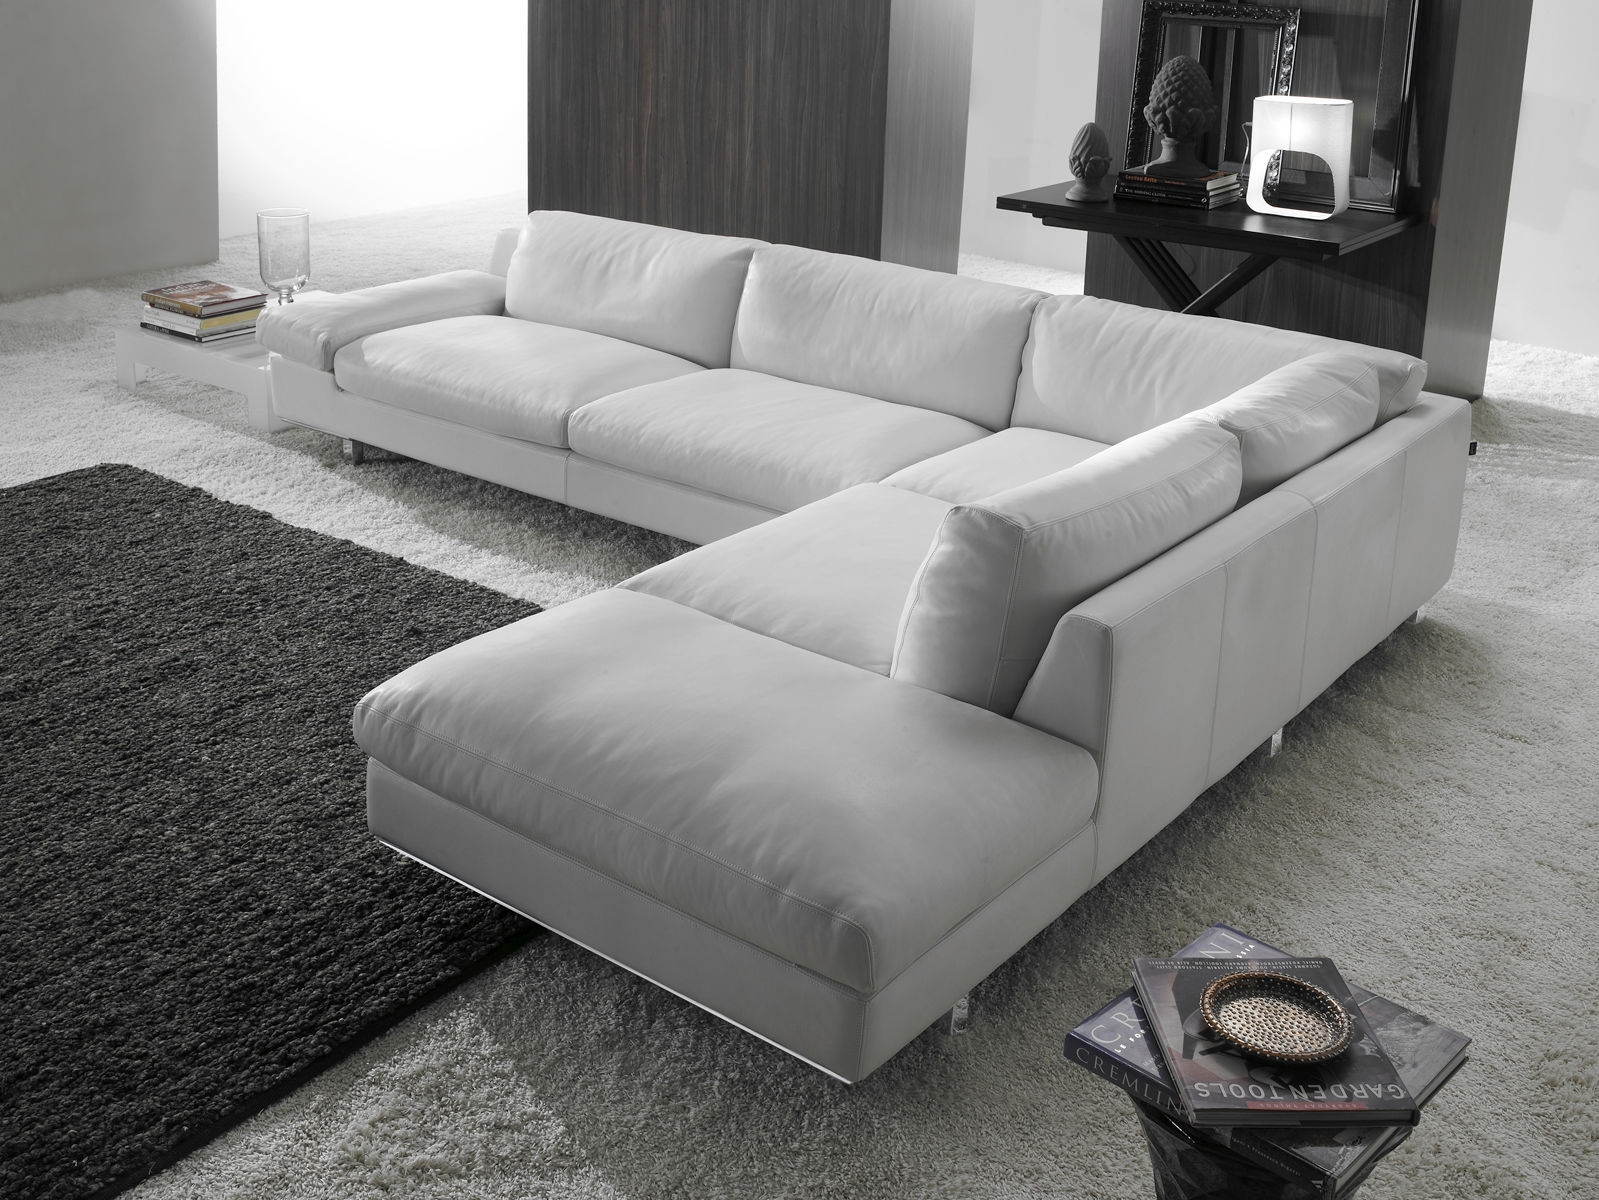 Corner Sofa Contemporary Leather 4 Seater Paran Intended For 4 Seater Sofas (View 12 of 15)